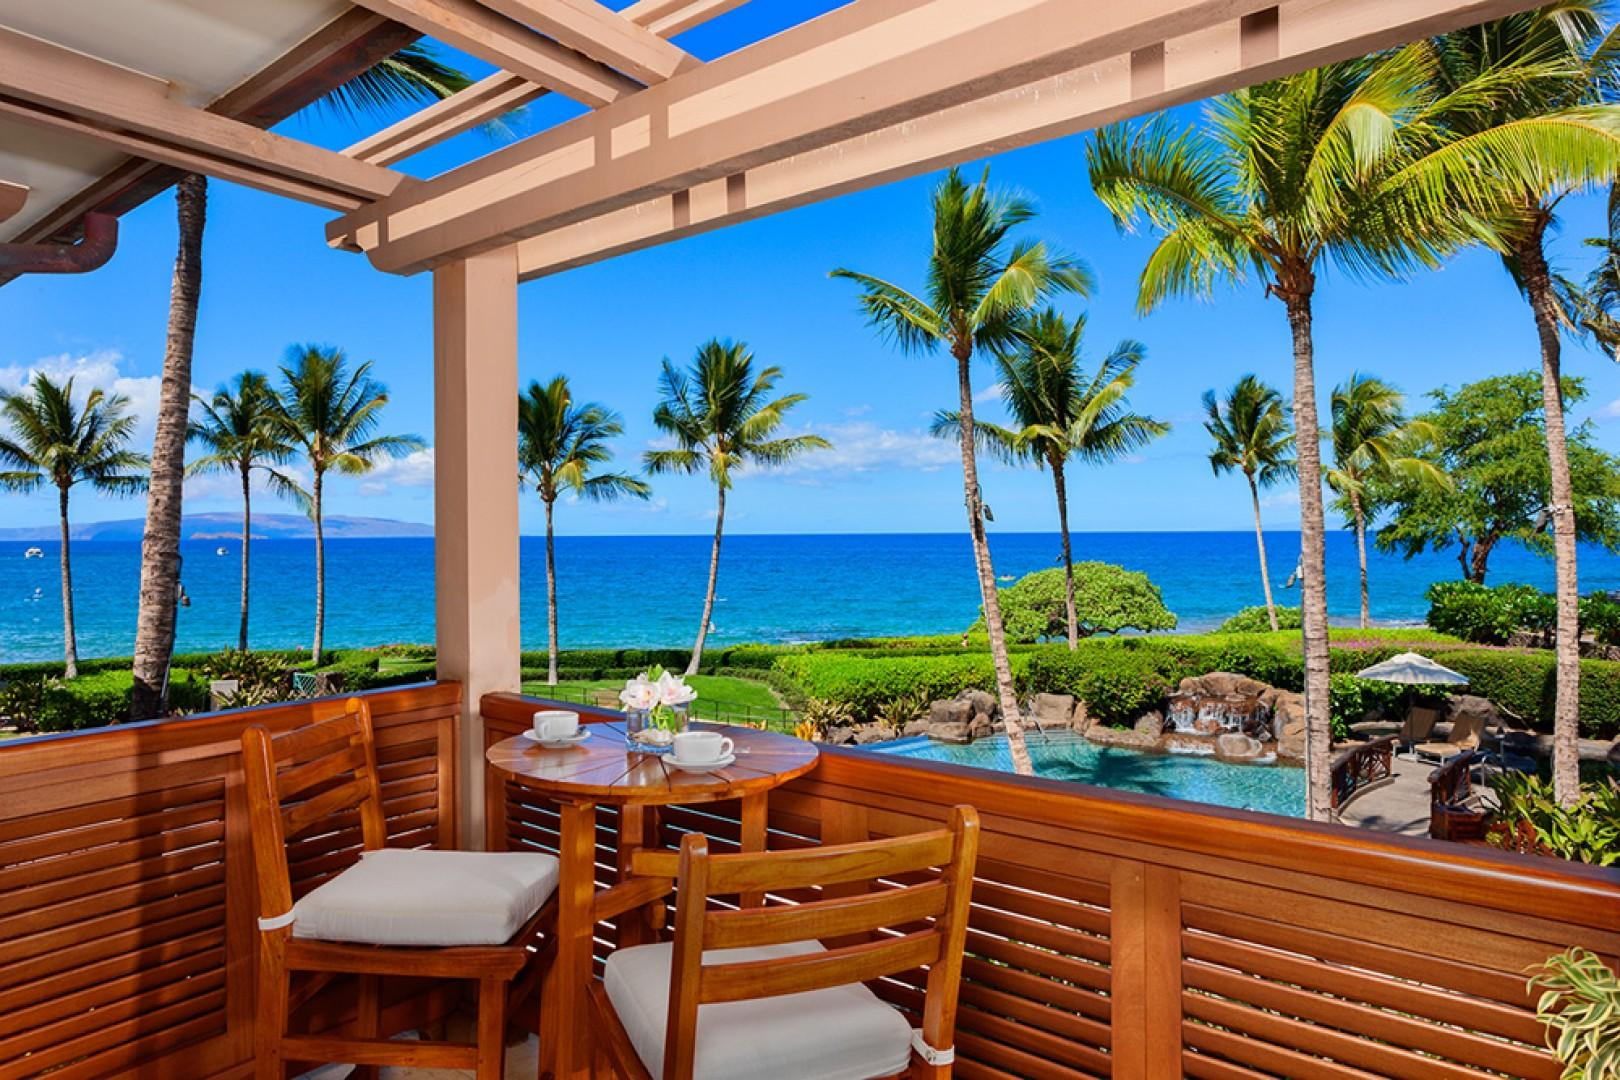 A201 Royal Ilima - Private Ocean and Pool View Lanai Off of the Master Bedroom and Bathroom